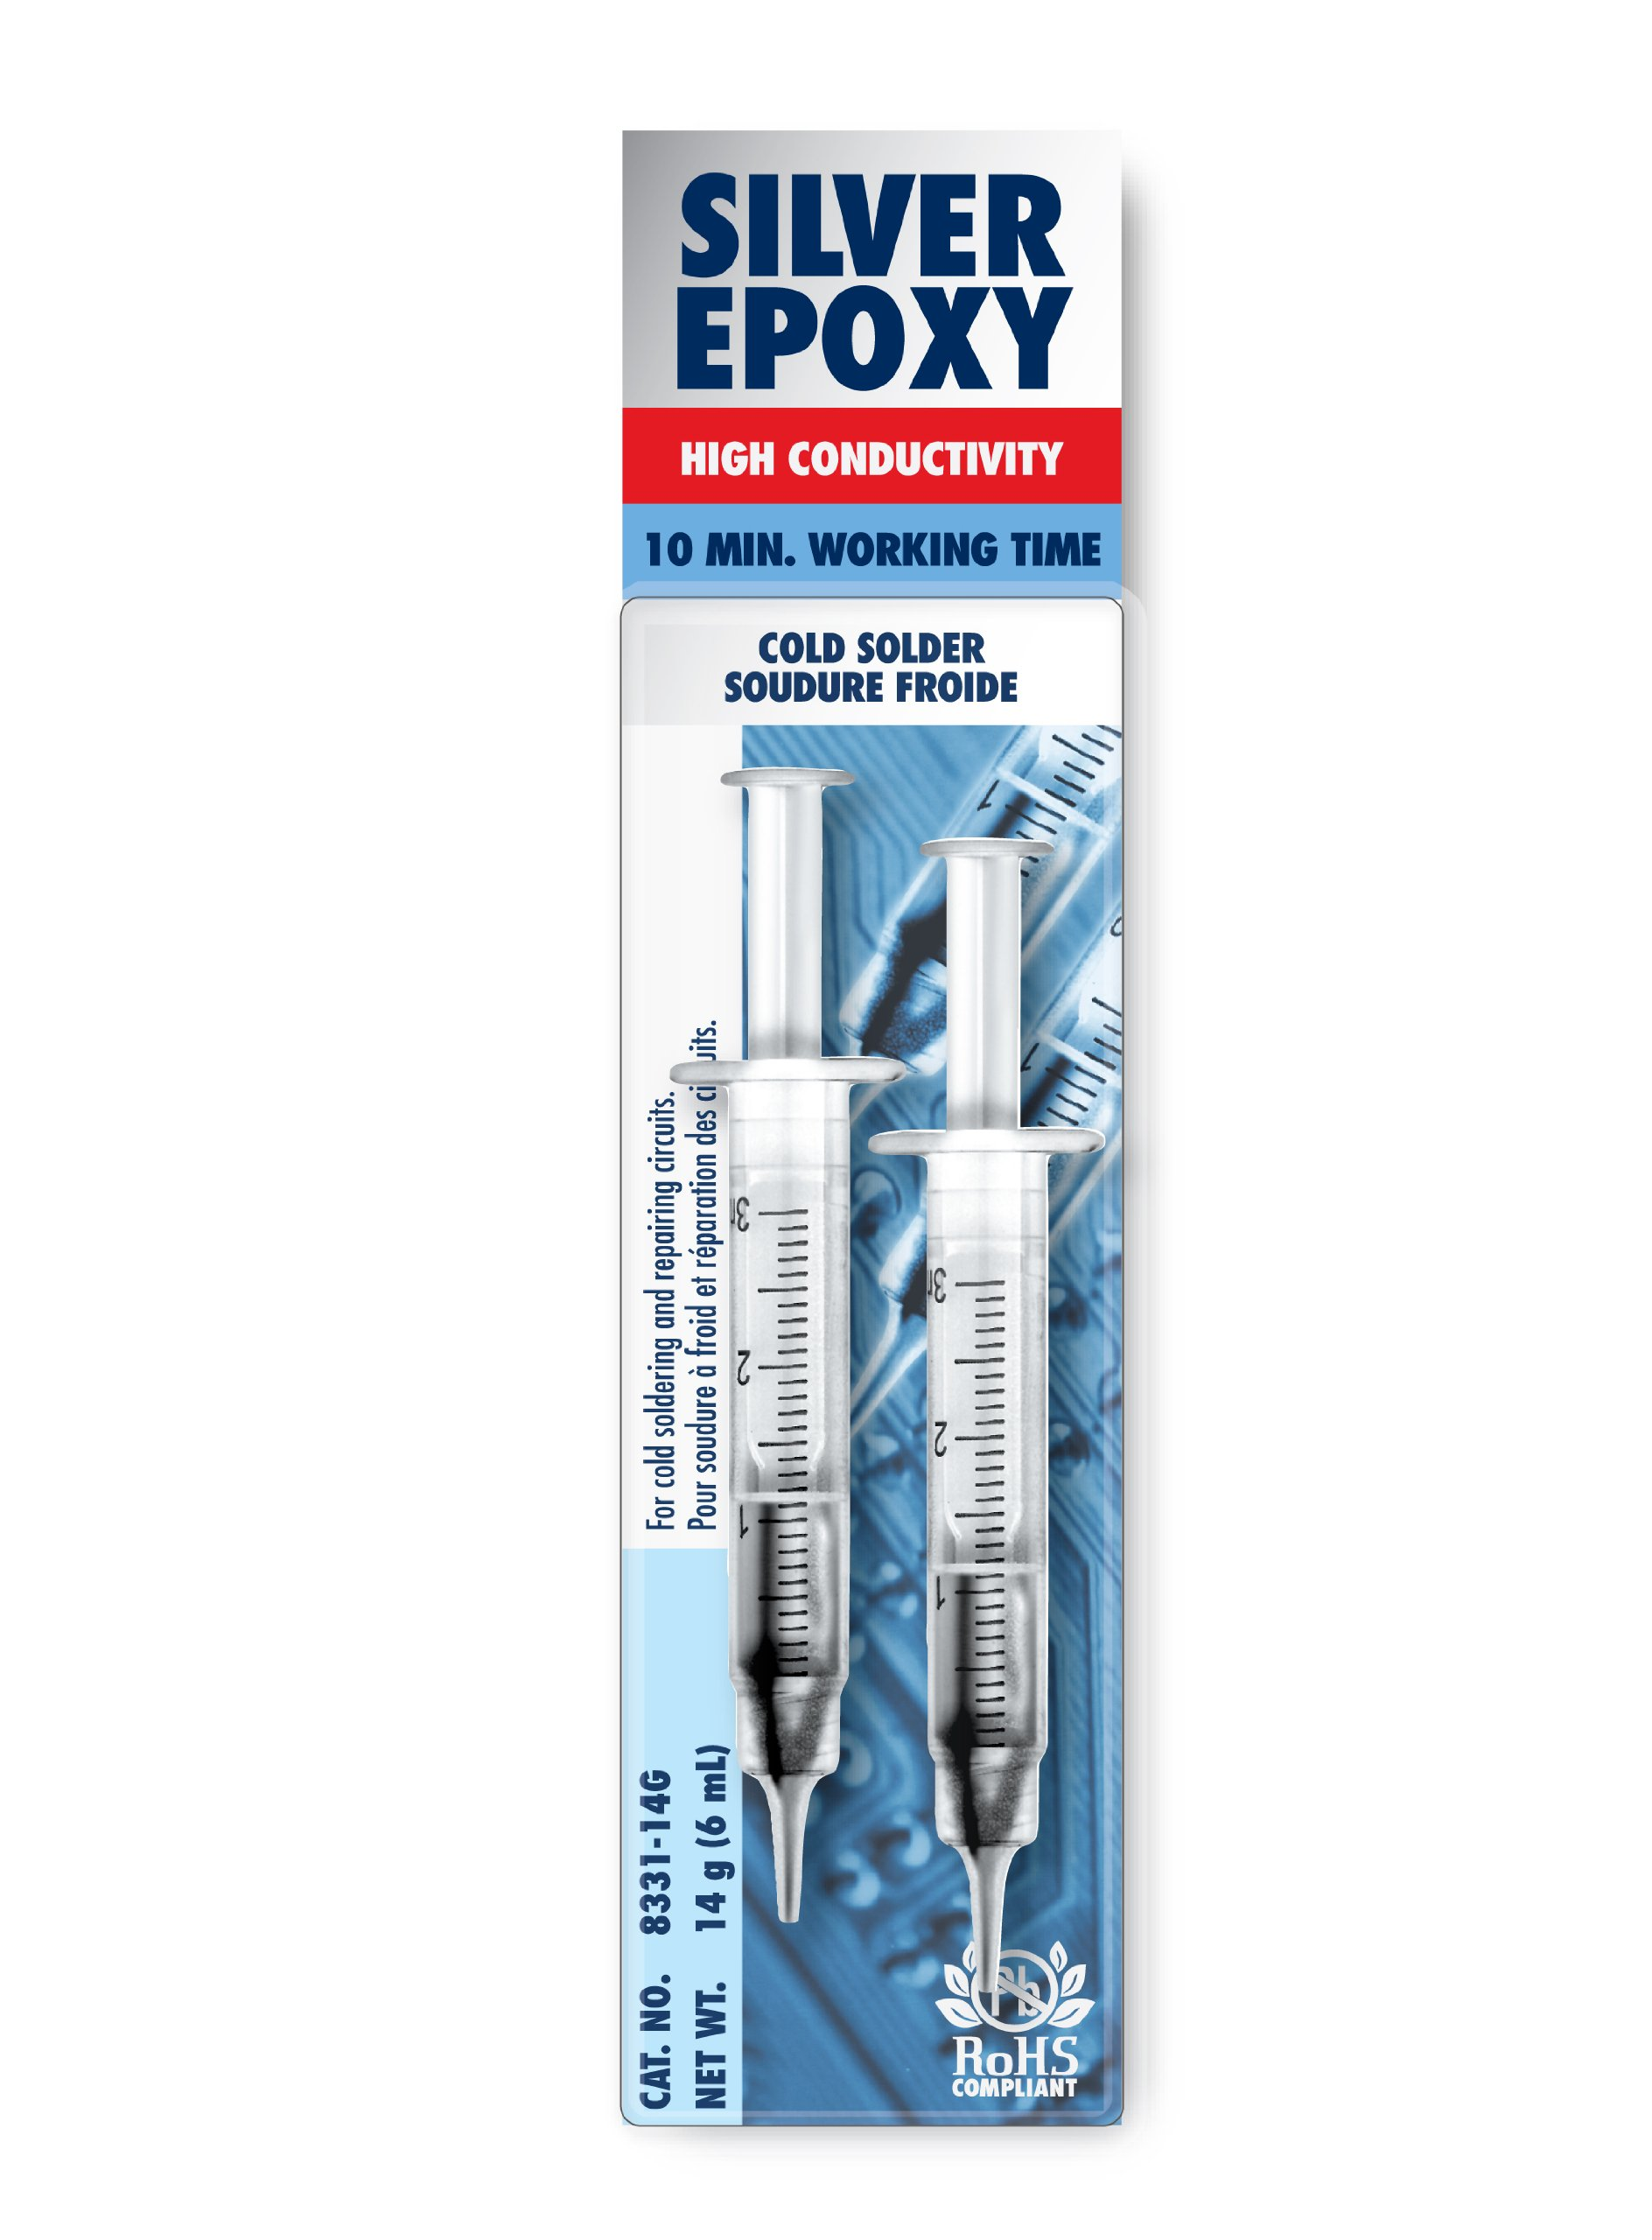 MG Chemicals 8331 Silver Epoxy Adhesive - High Conductivity, 10 min working time, 14 g, 2 Dispeners